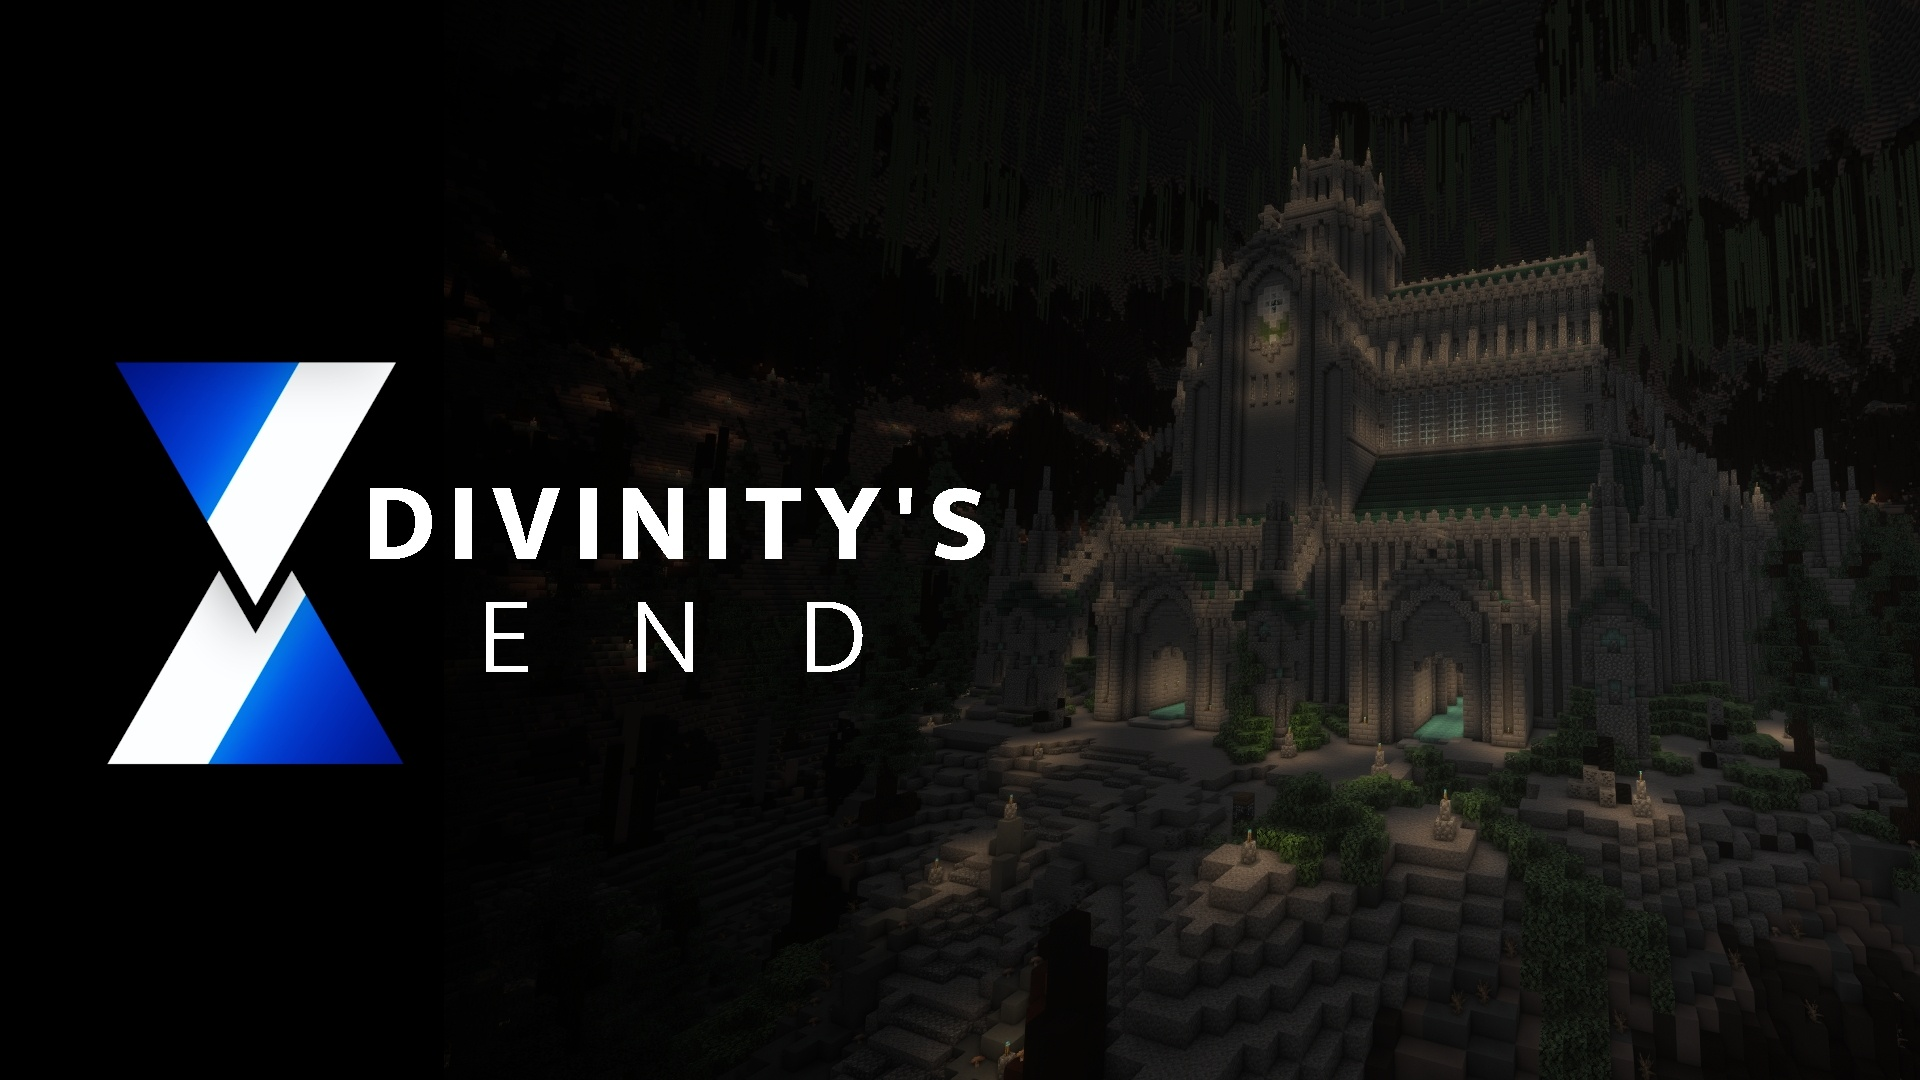 Divinity's End